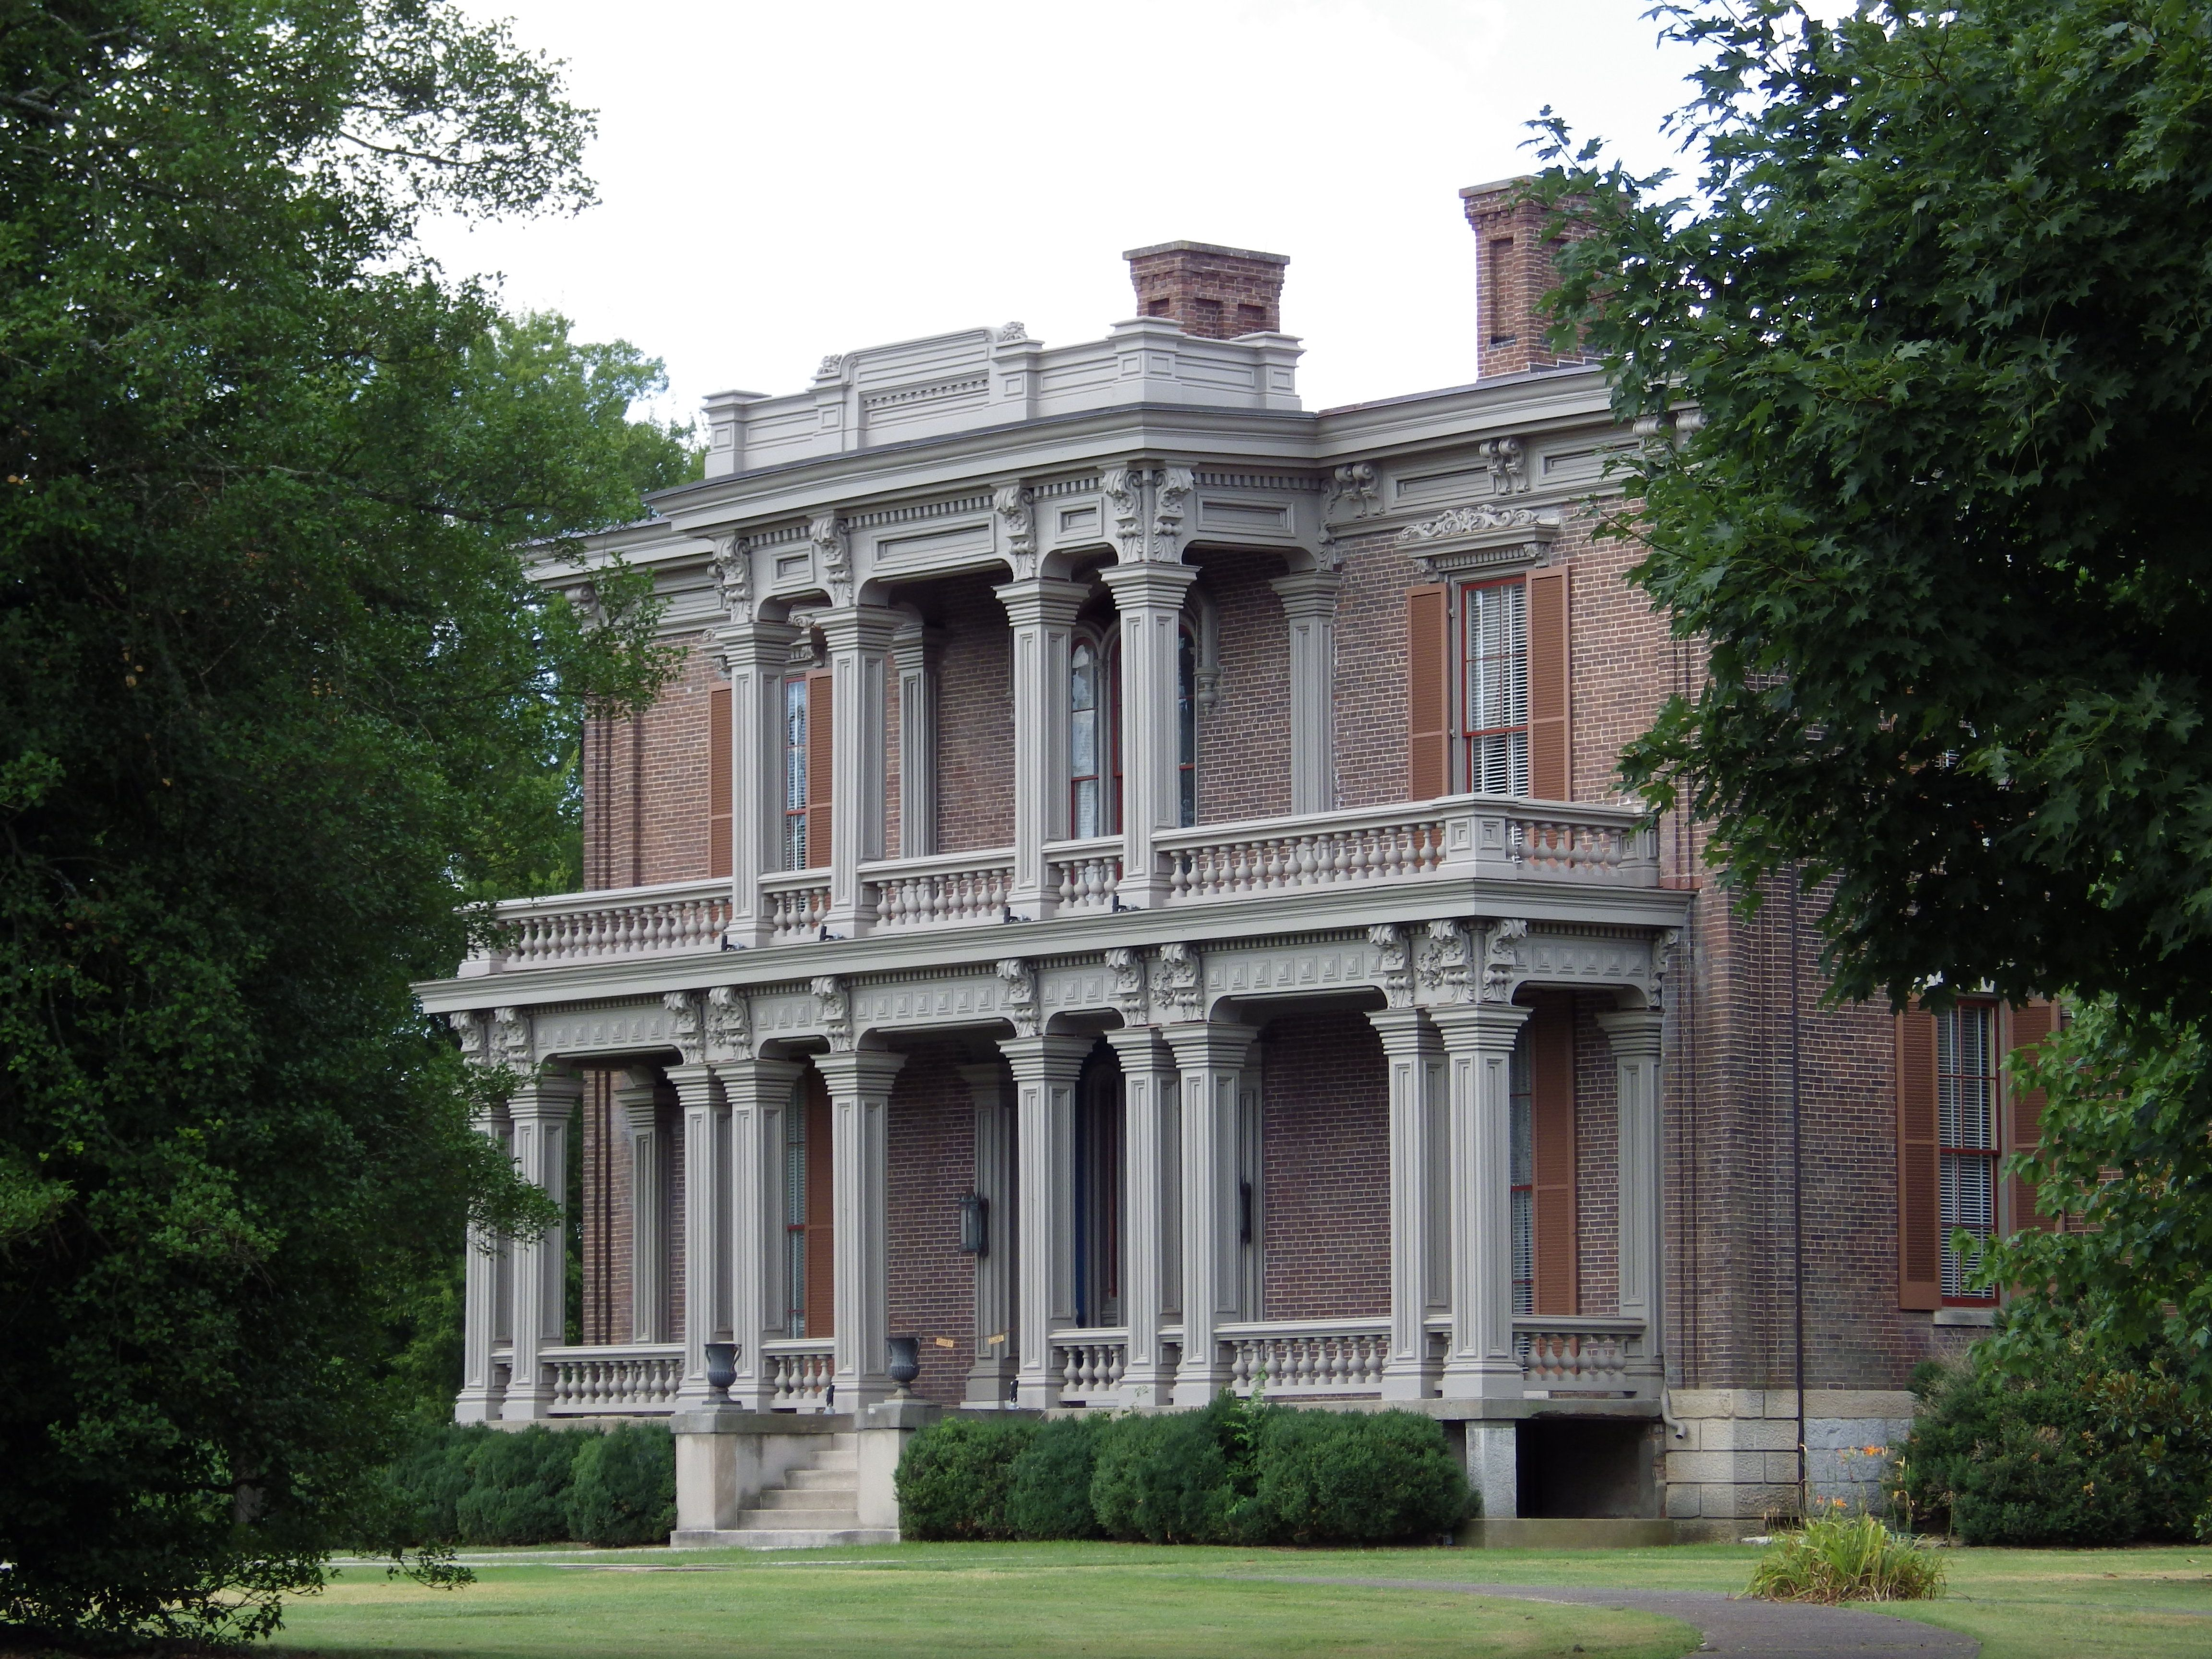 Two Rivers Mansion Built by David McGavock in 1859. The